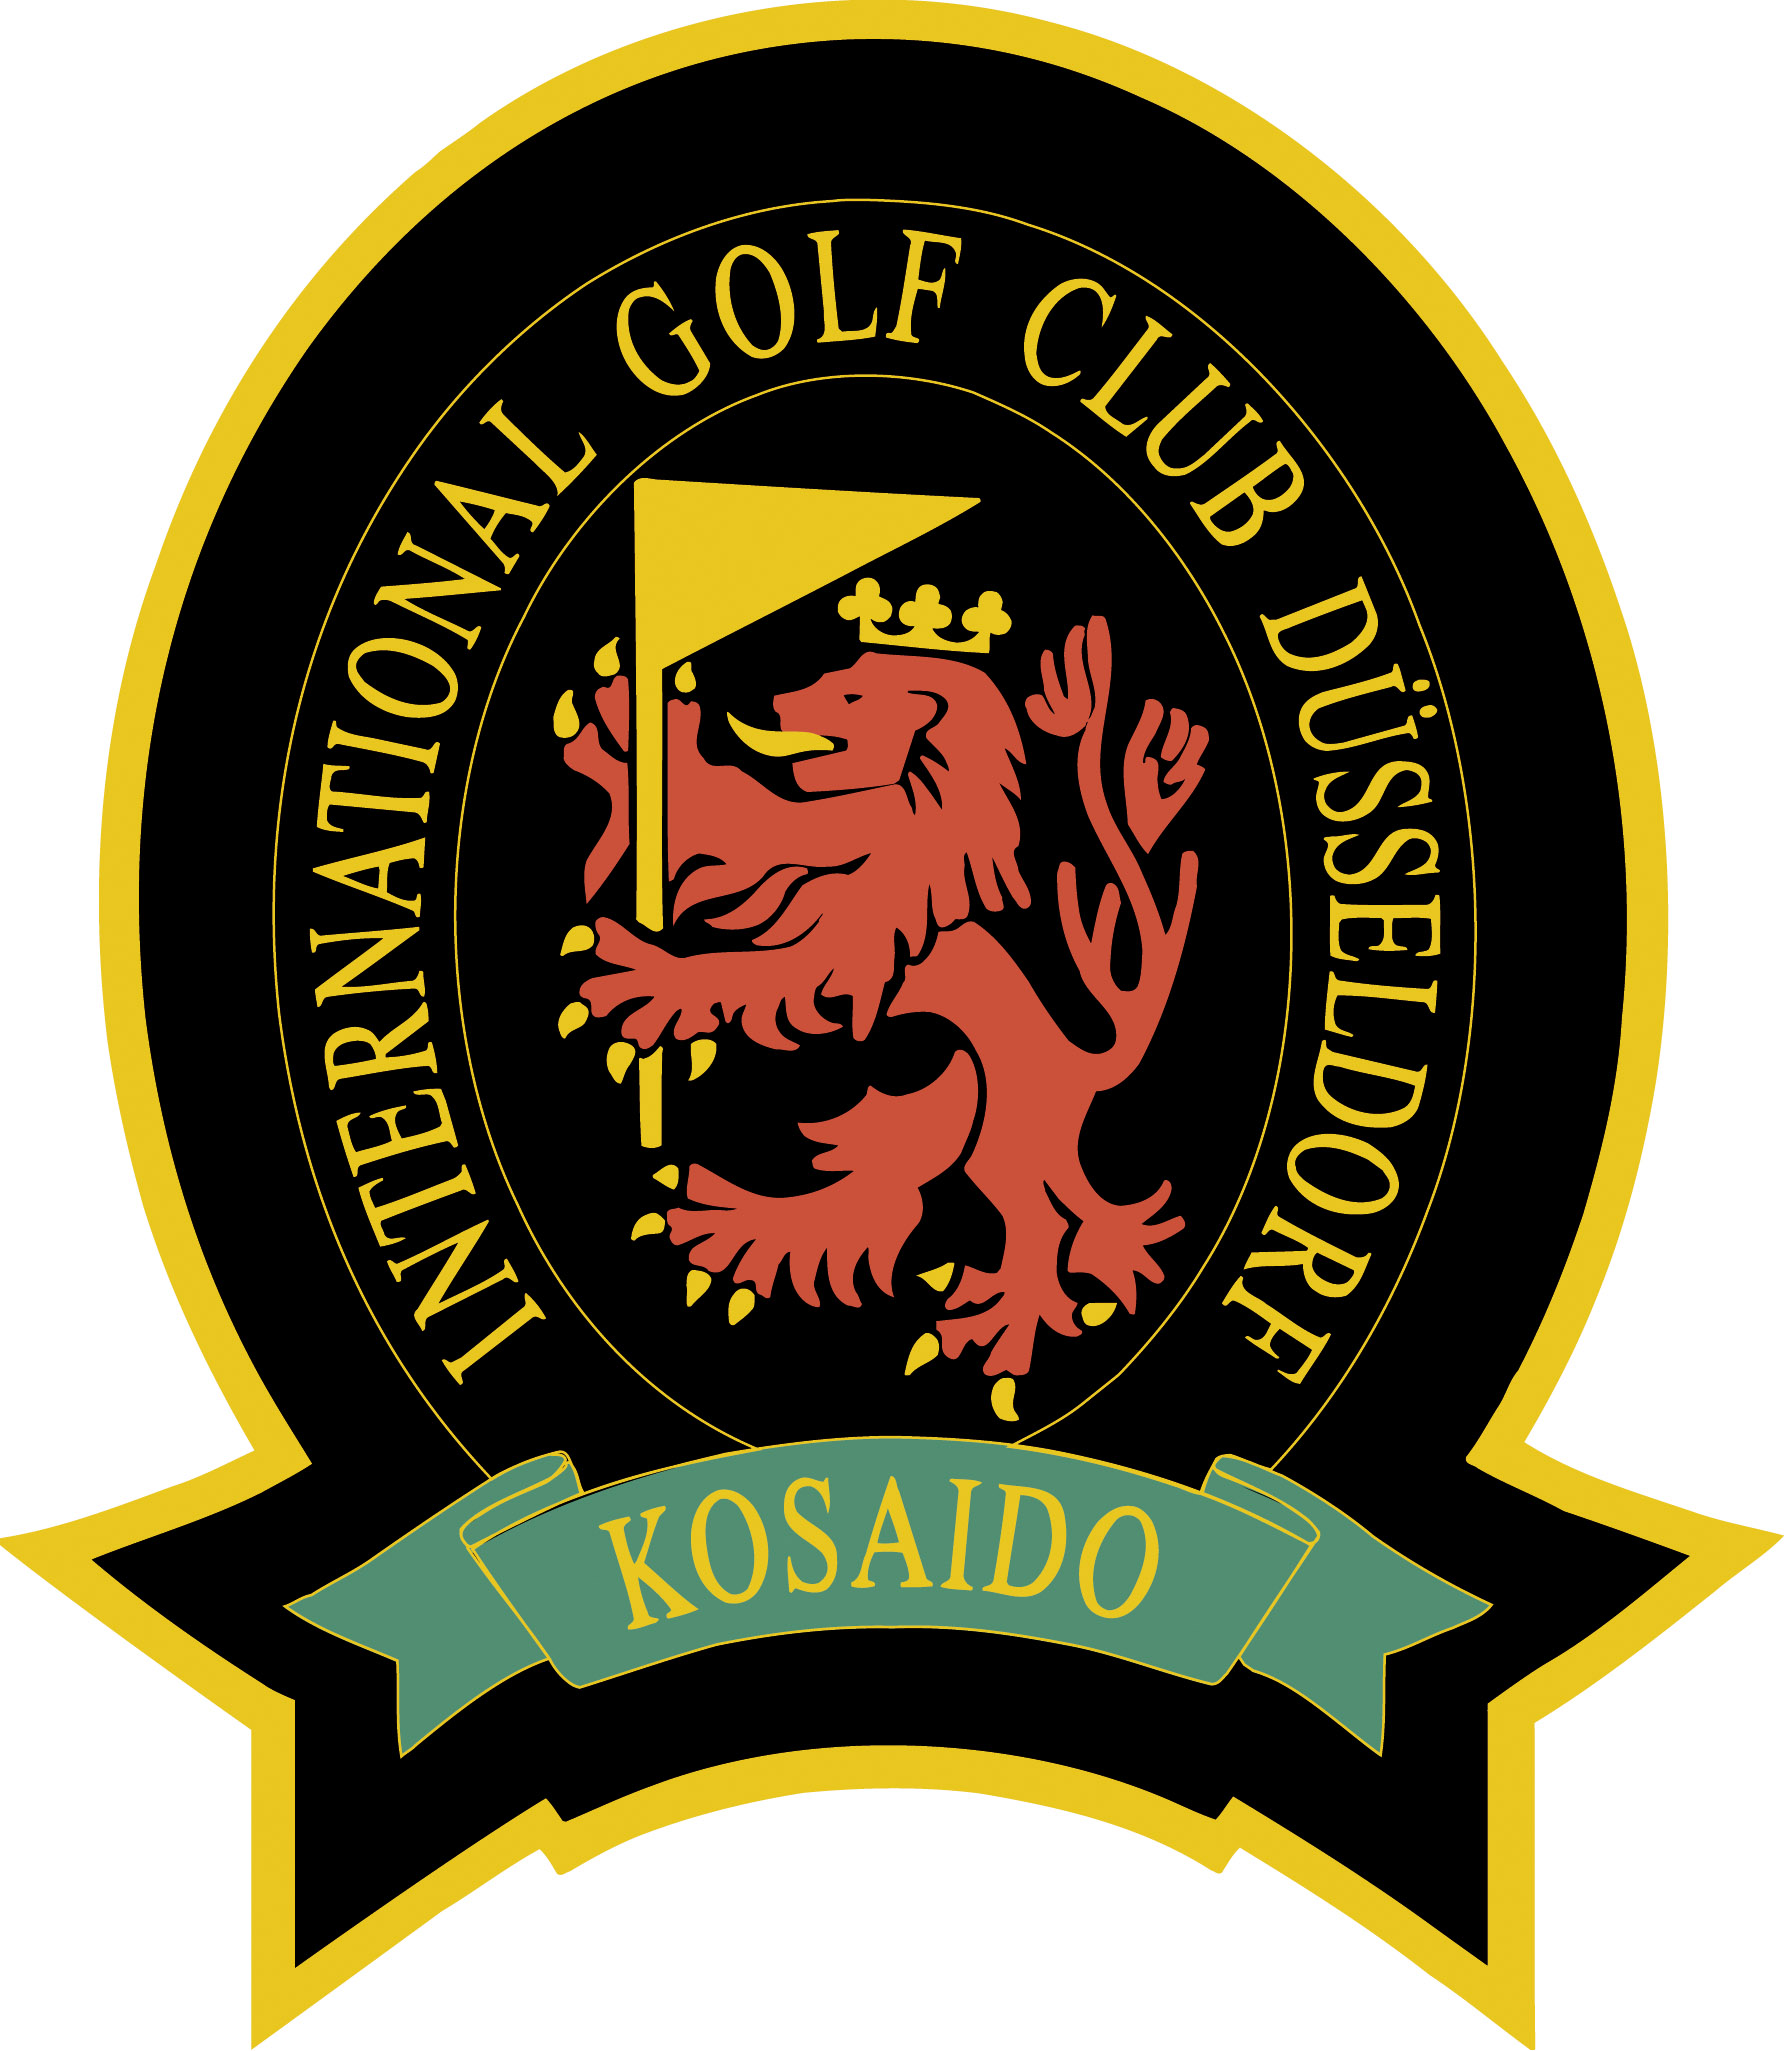 Logo Kosaido International Golf Club Düsseldorf